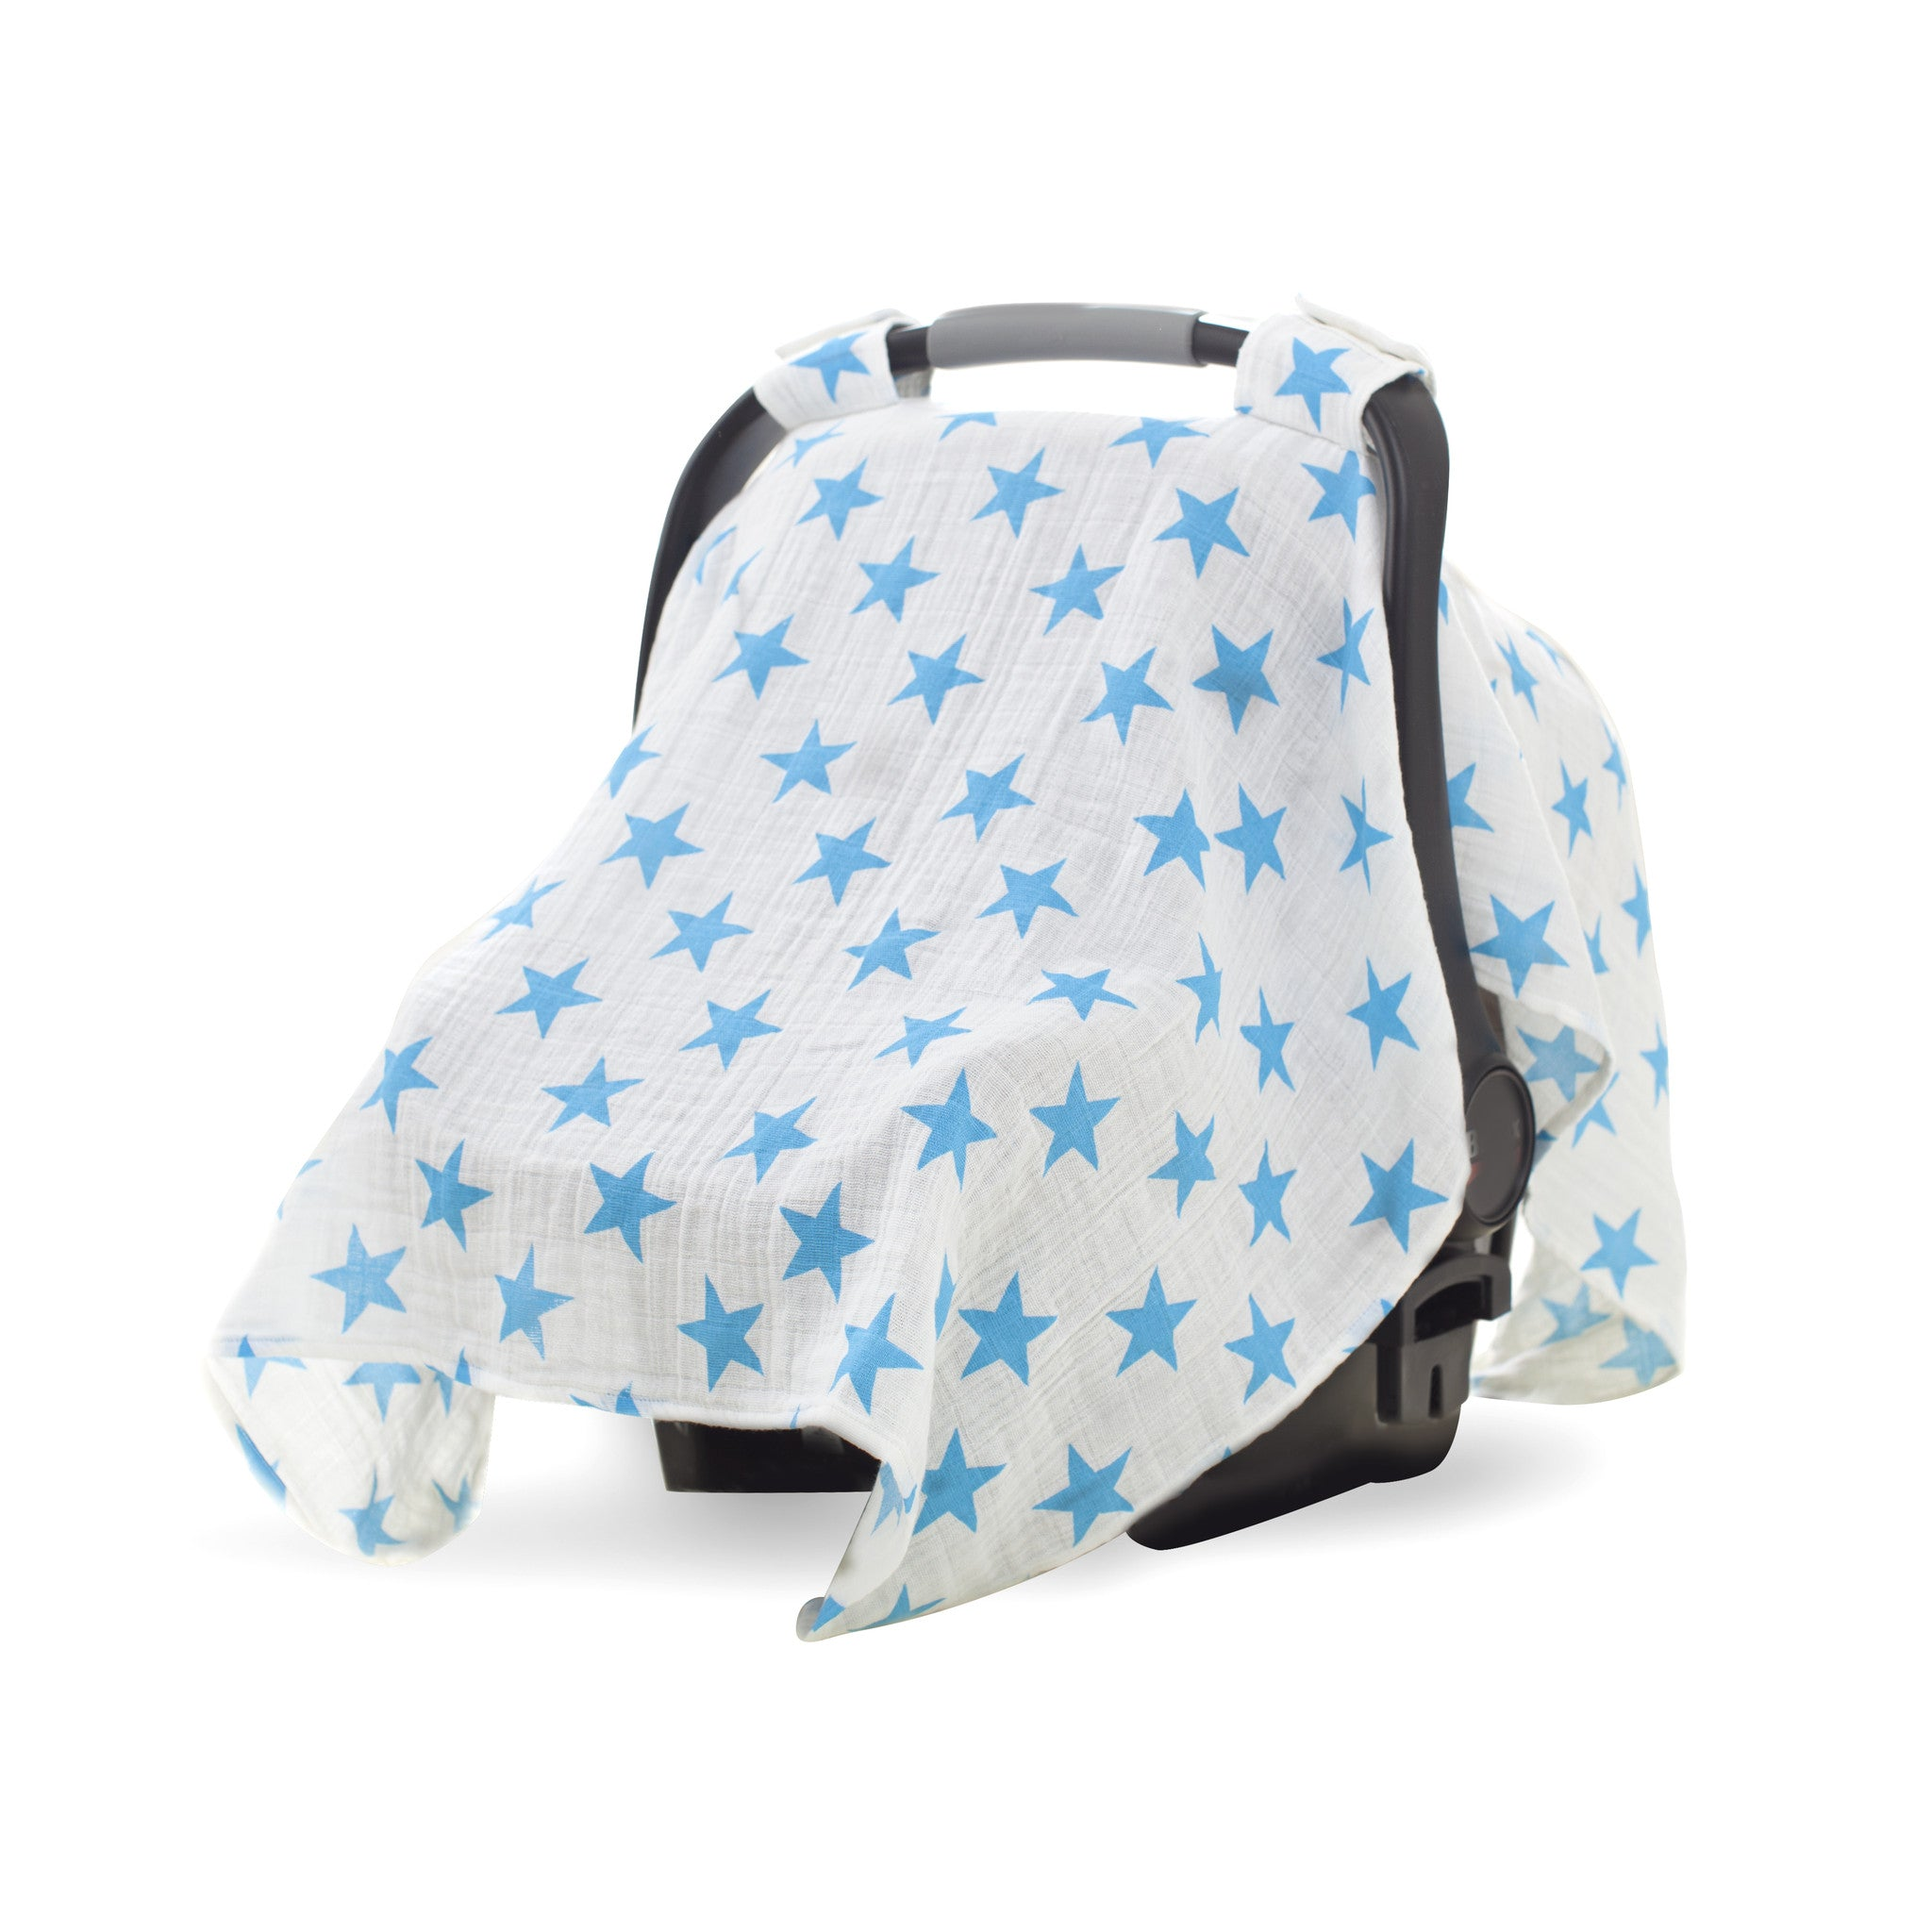 Car Seat Canopy By Aden Anais From Peppyparents Com